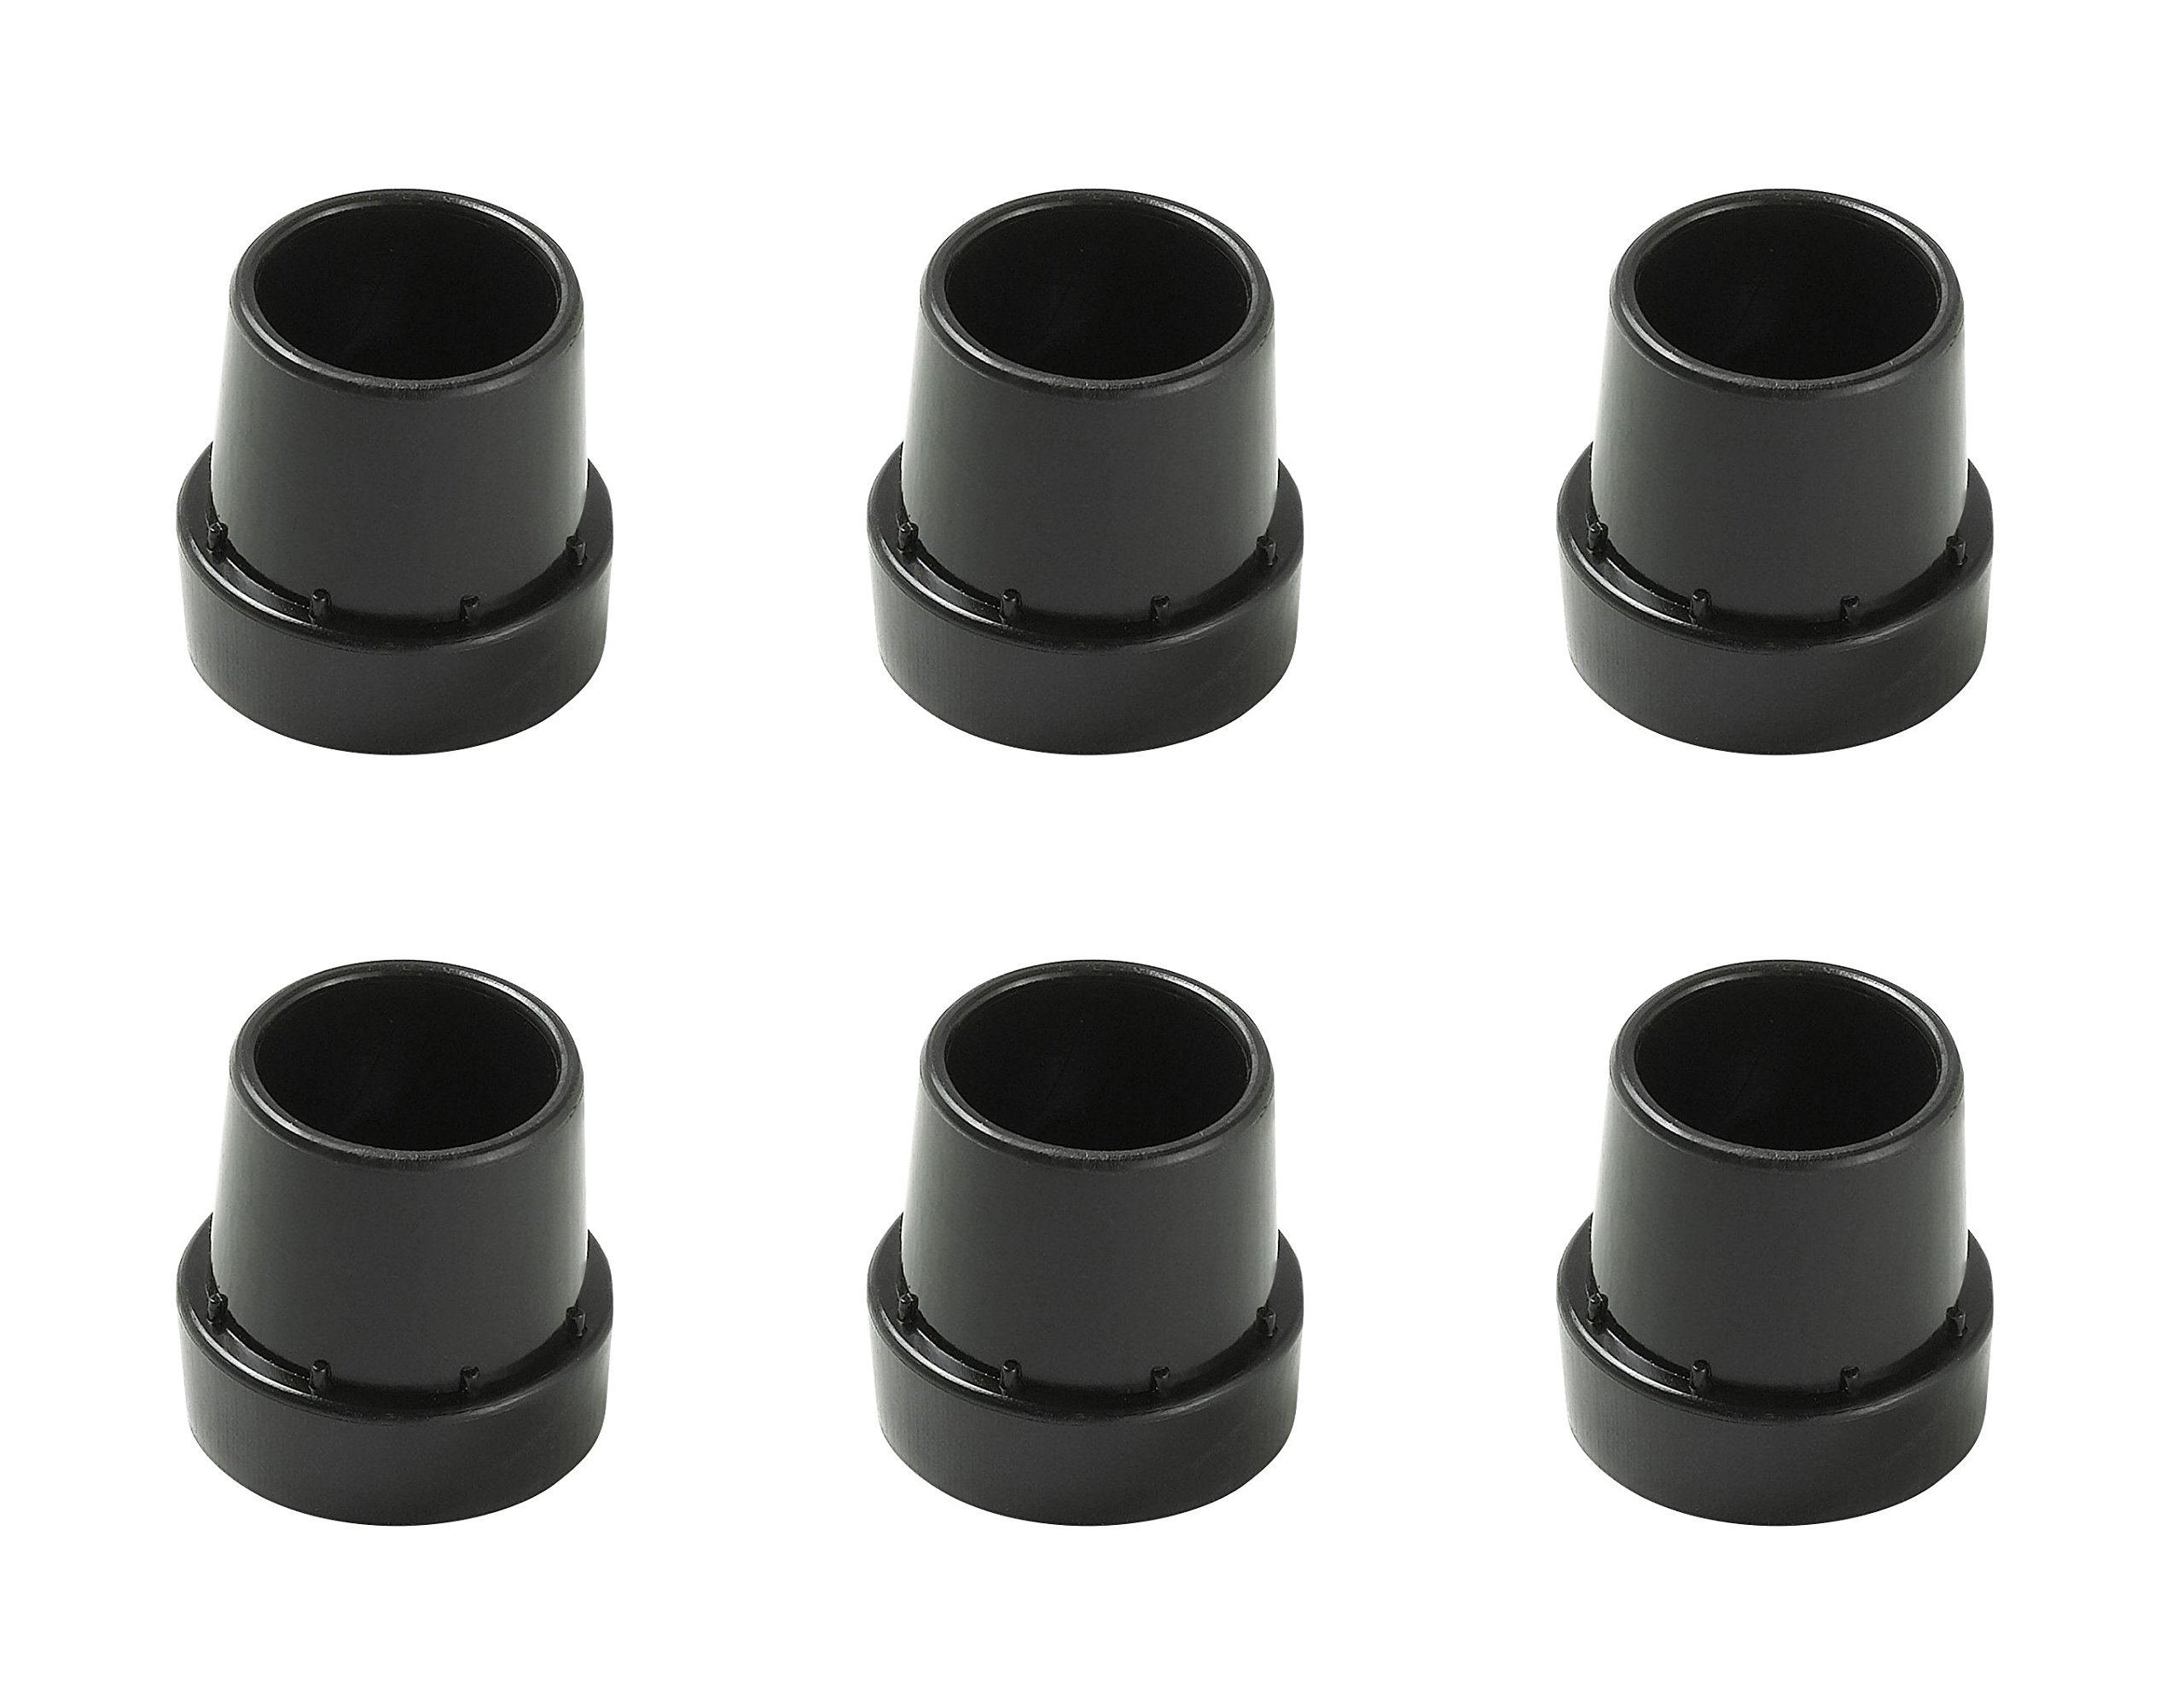 Upper Bounce Replacement Rubber Cap Tips for Mini Trampoline Legs (Set of 6) by Upper Bounce